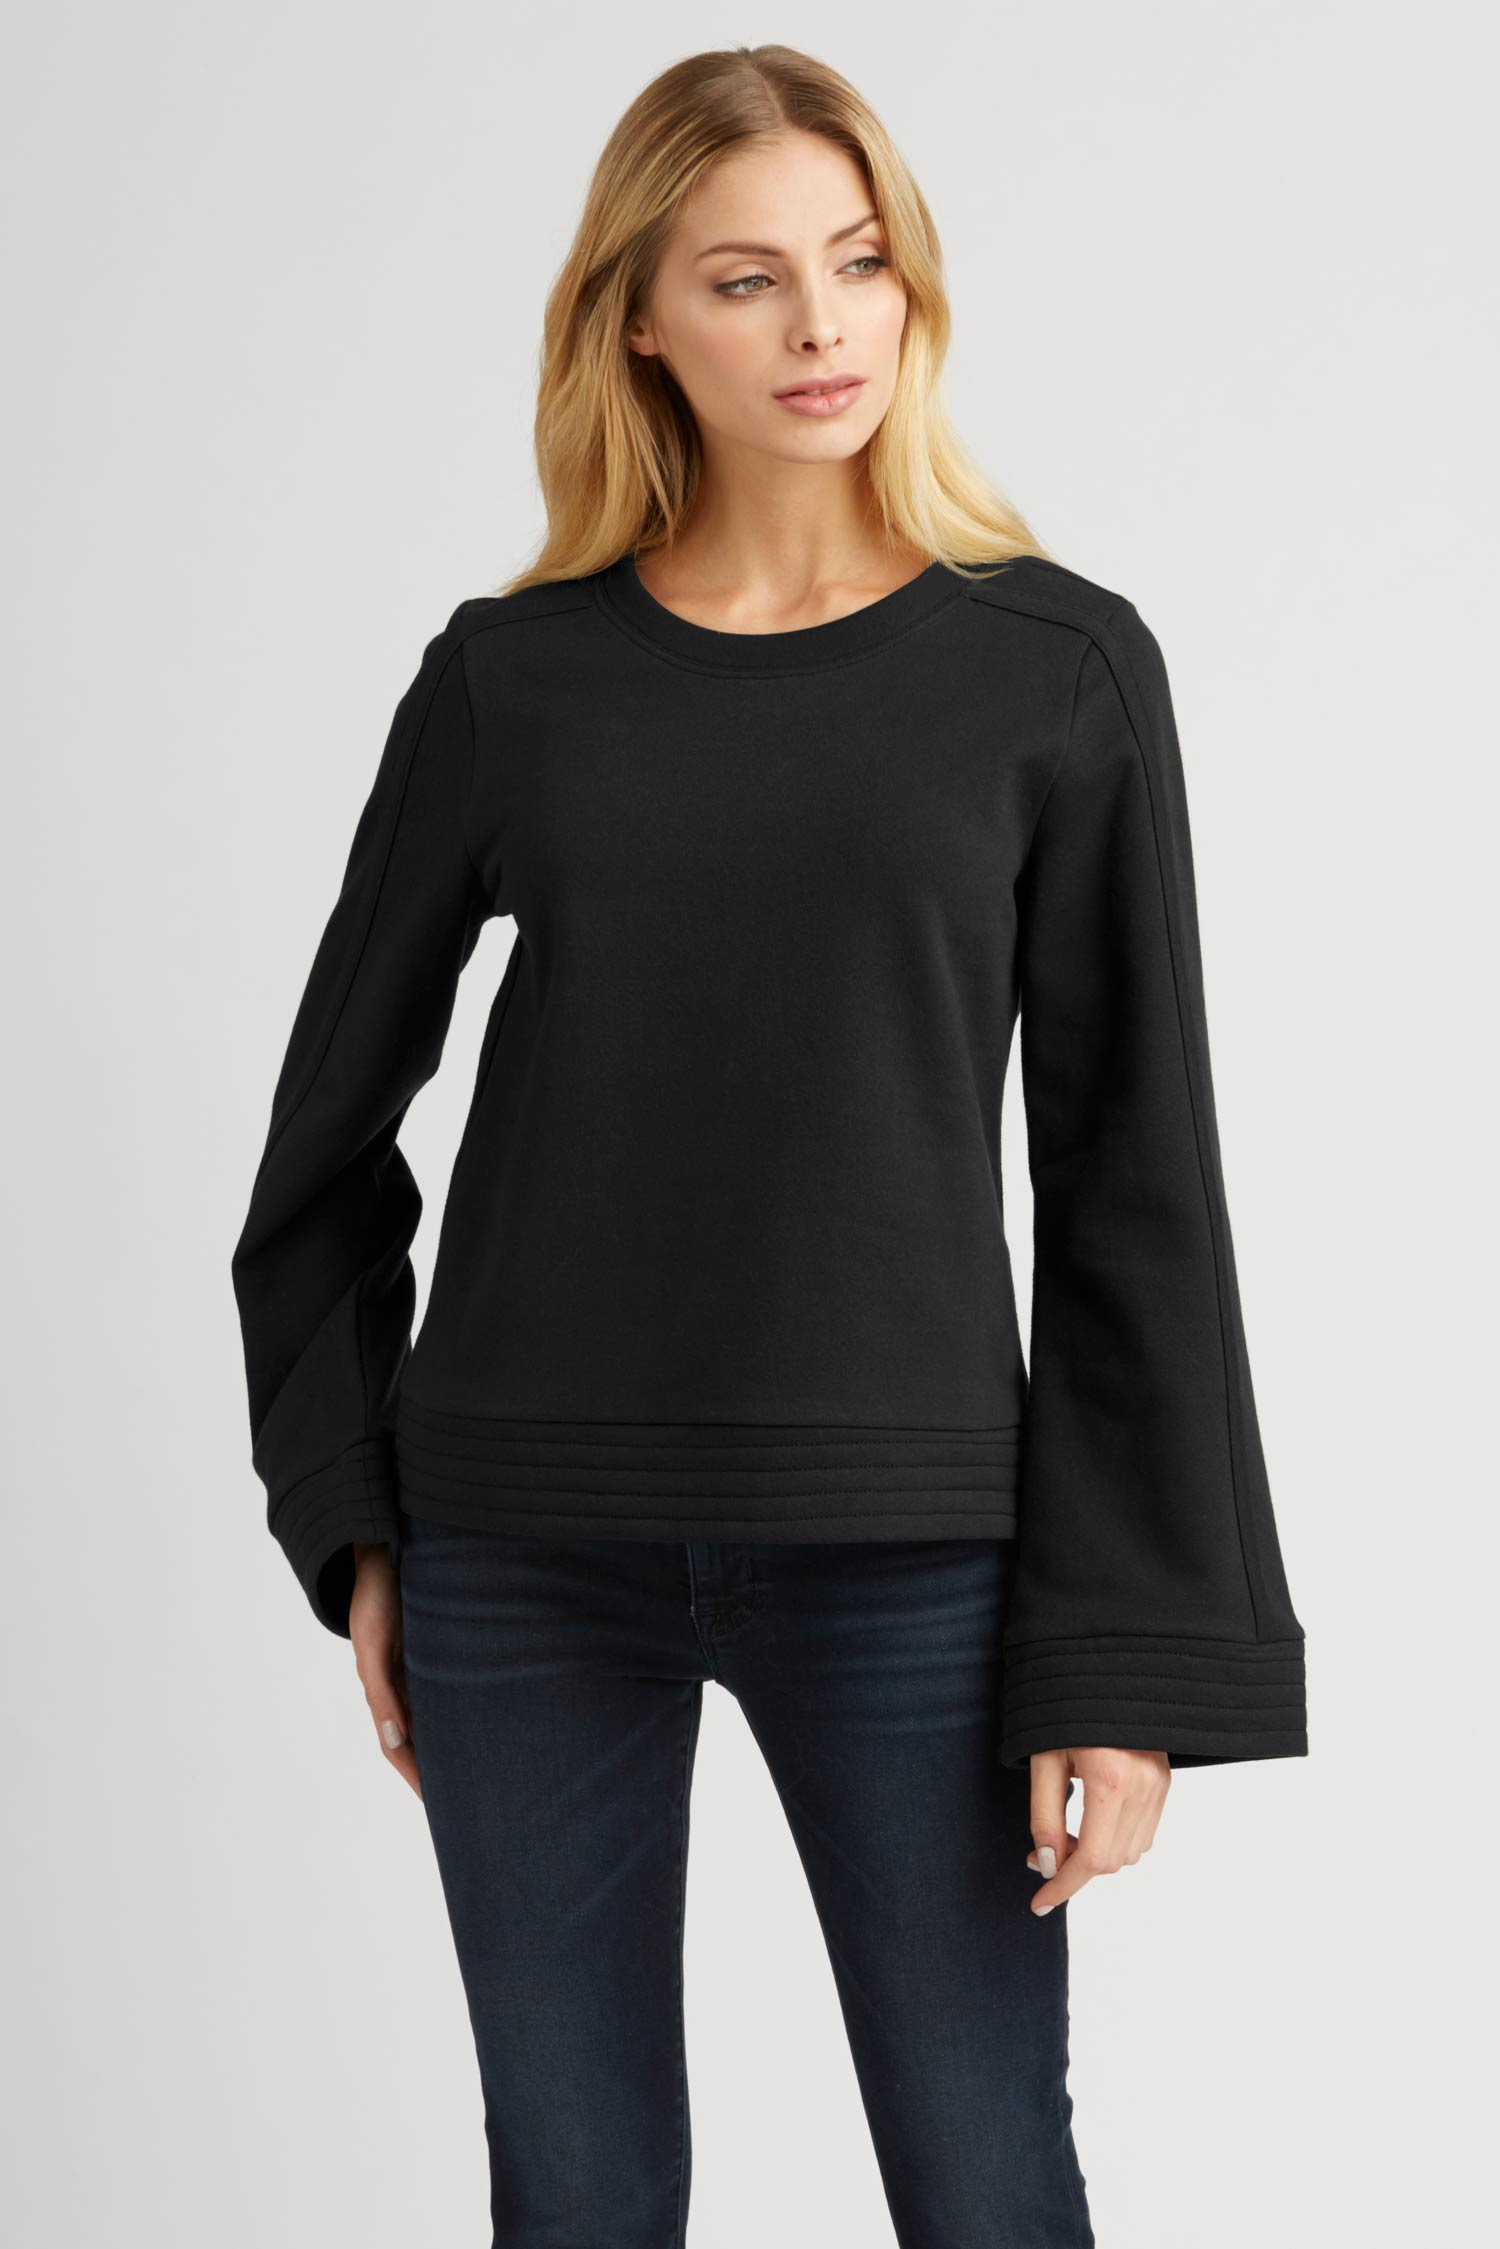 Womens Bell Sleeve Pullover Top in Black